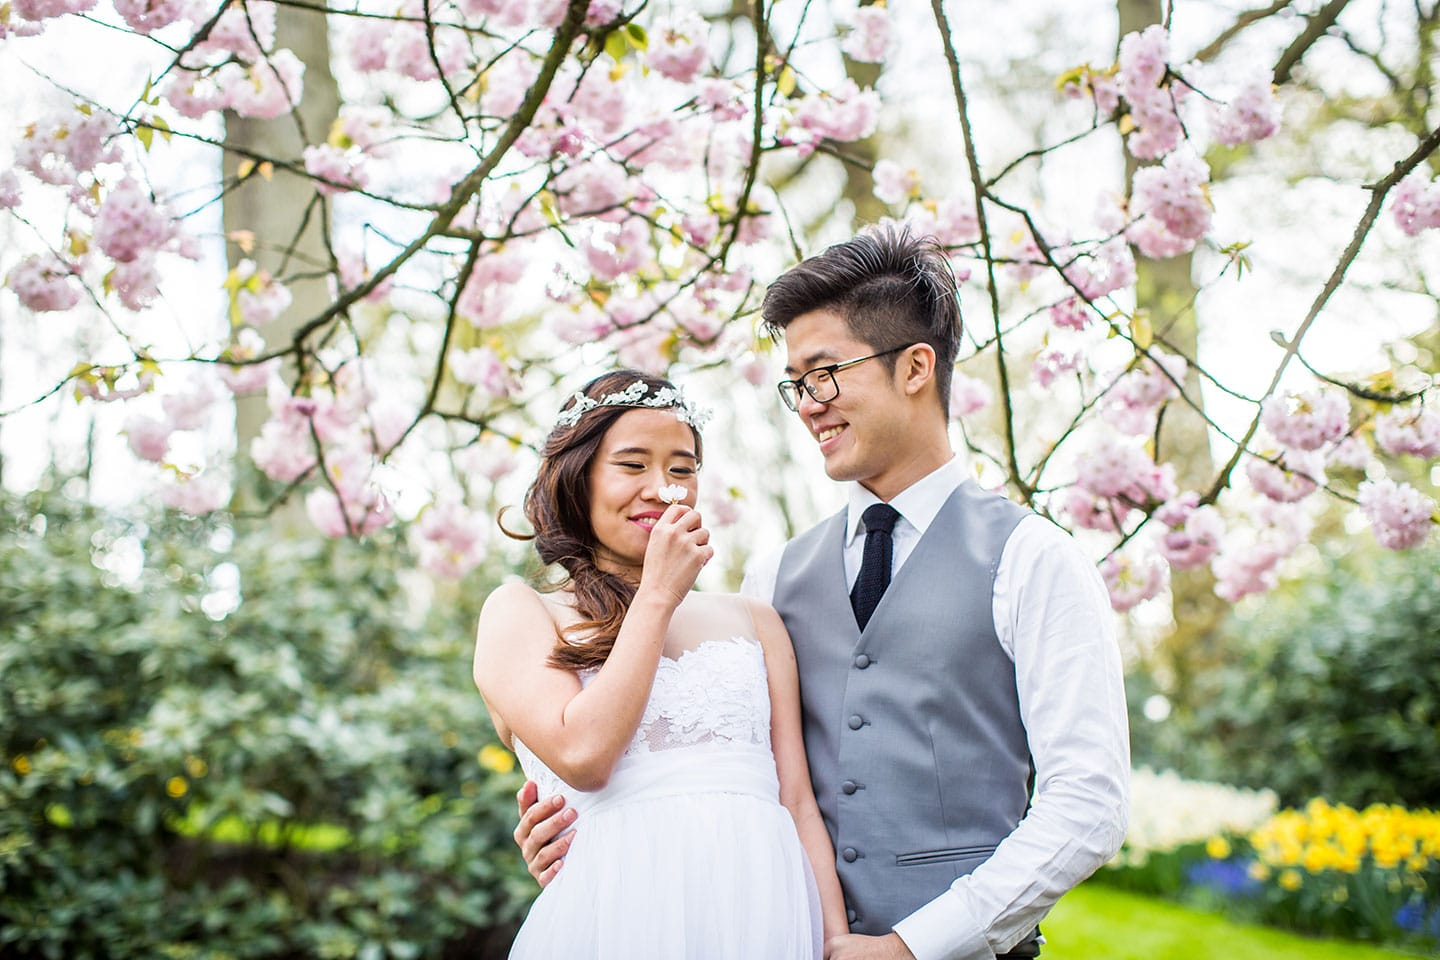 25-Keukenhof-prewedding-tulips-photographer